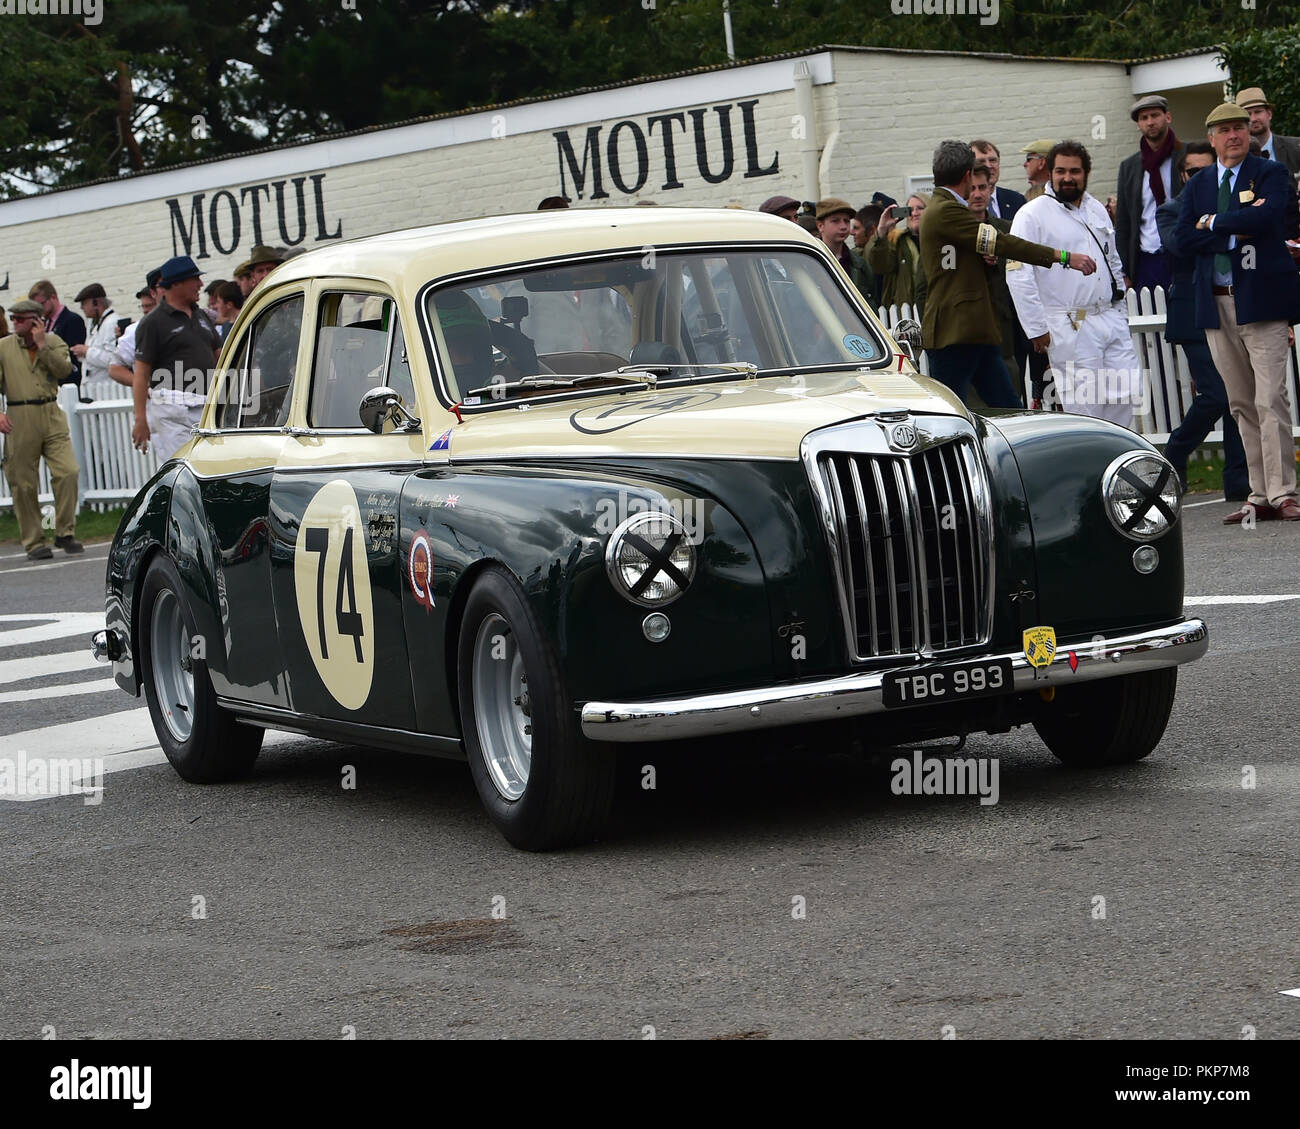 Mg Magnette Stock Photos & Mg Magnette Stock Images